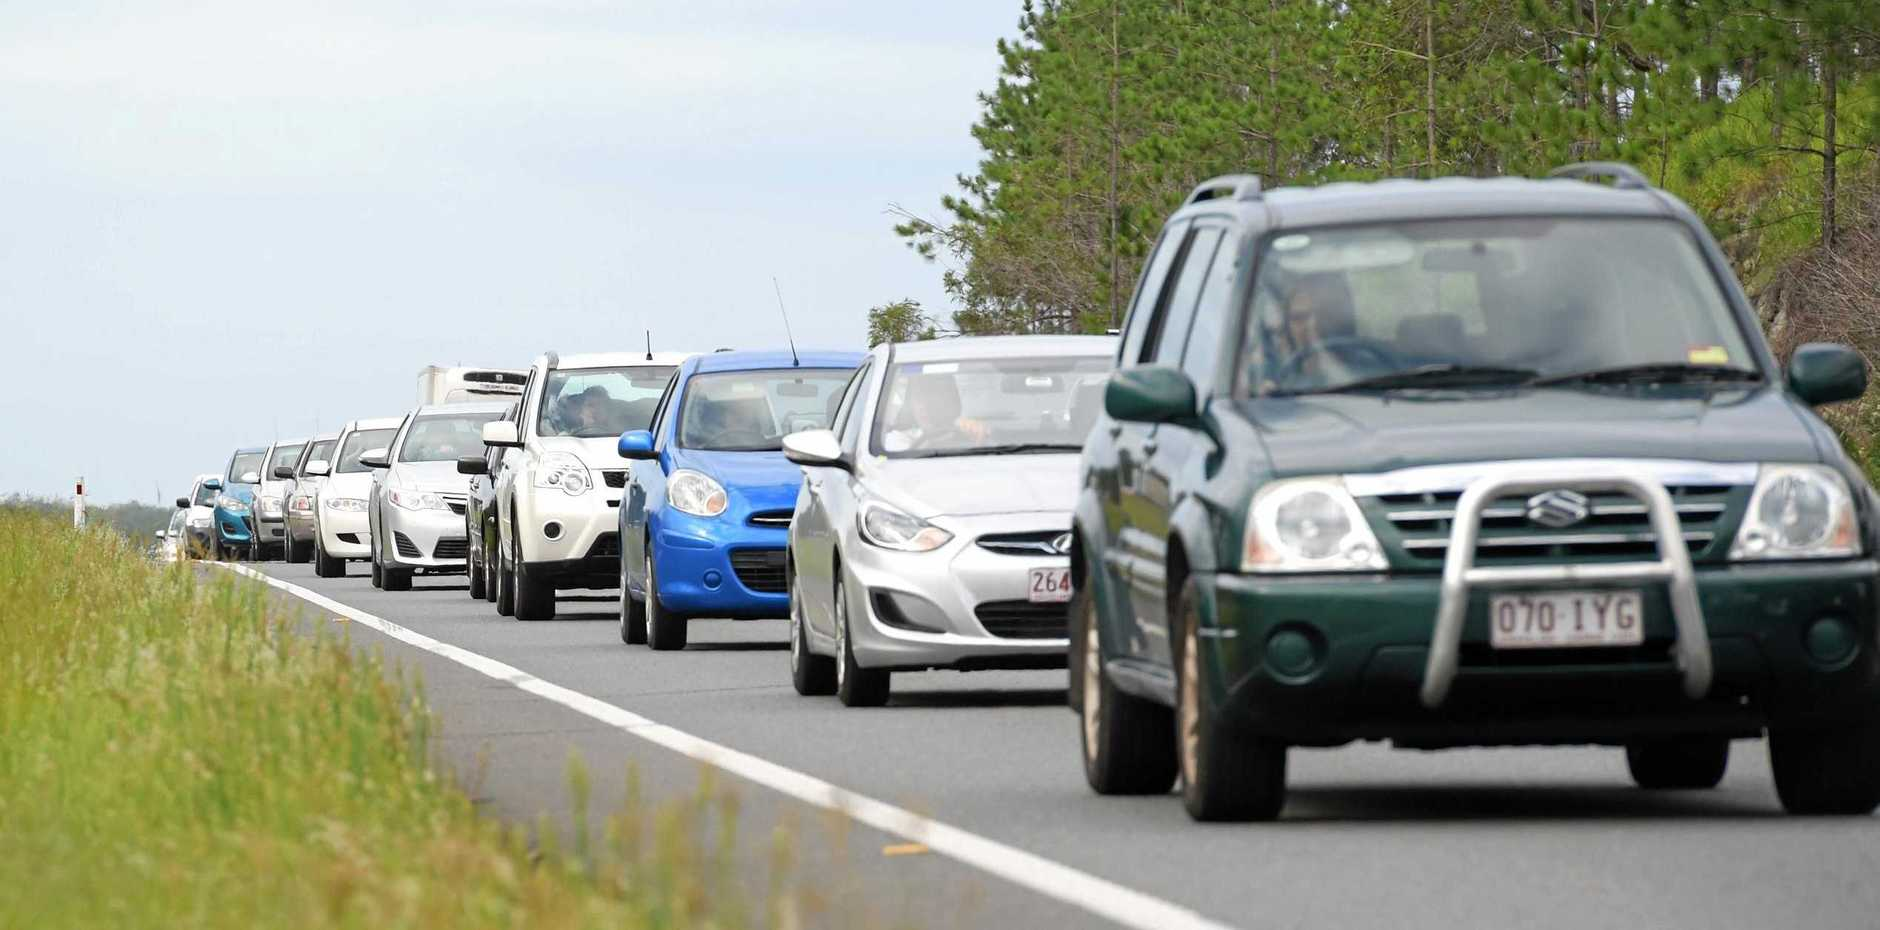 FILE PHOTO: Traffic is blocked on the southbound lanes of the Bruce Highway after a multi-vehicle crash at Beerburrum.